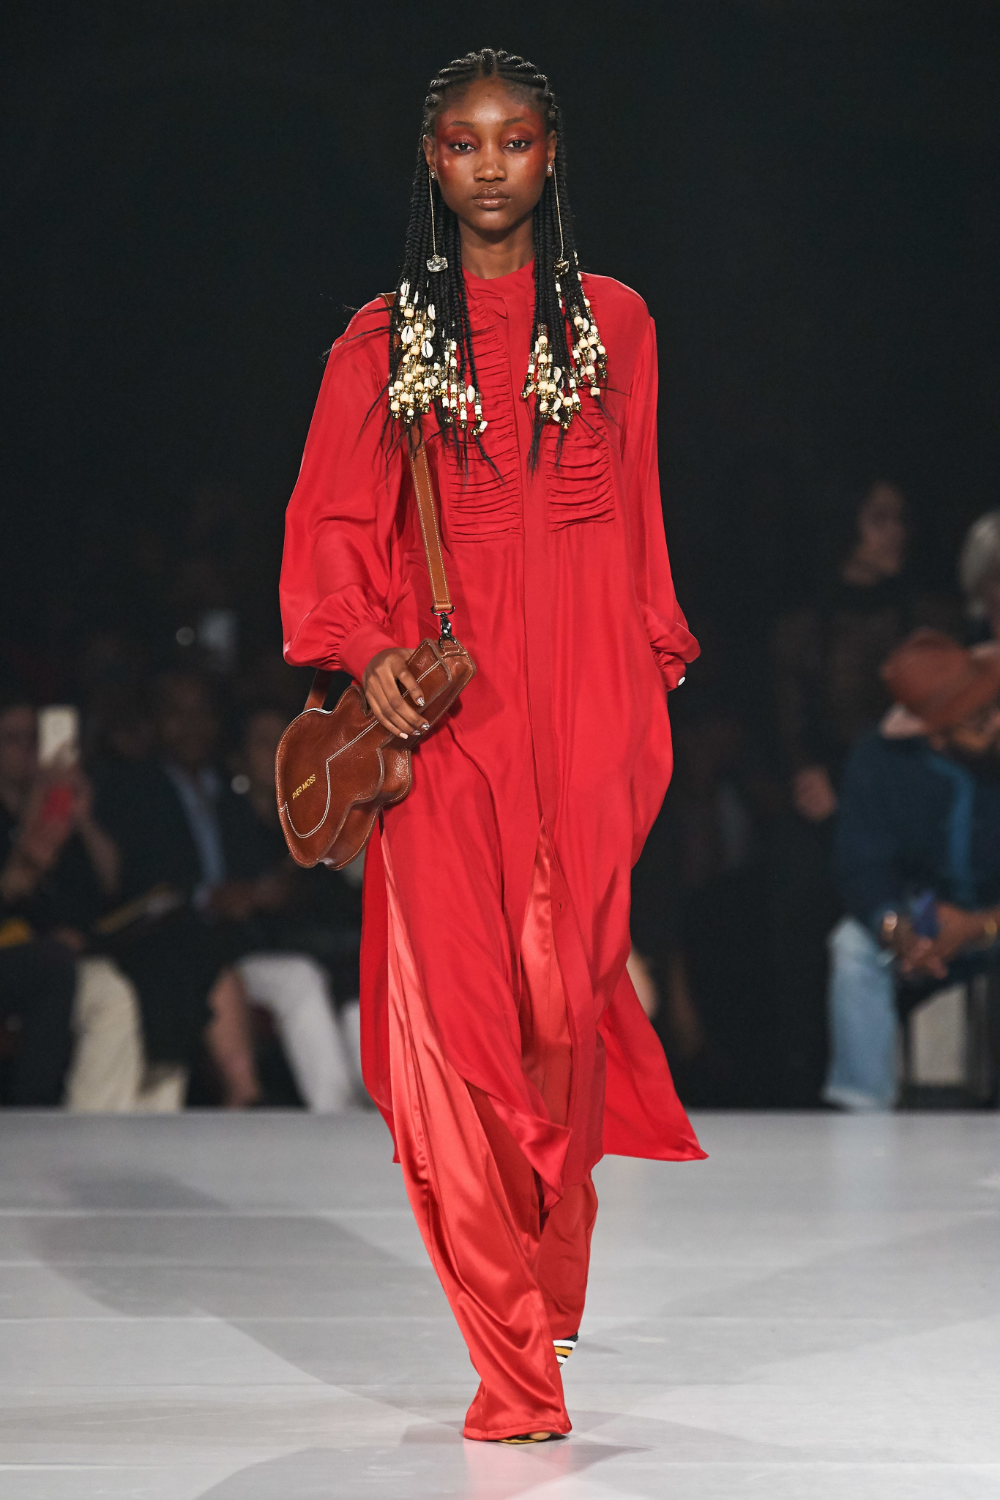 Black Fashion Designers 2020.Pyer Moss Spring 2020 Ready To Wear Fashion Show In 2019